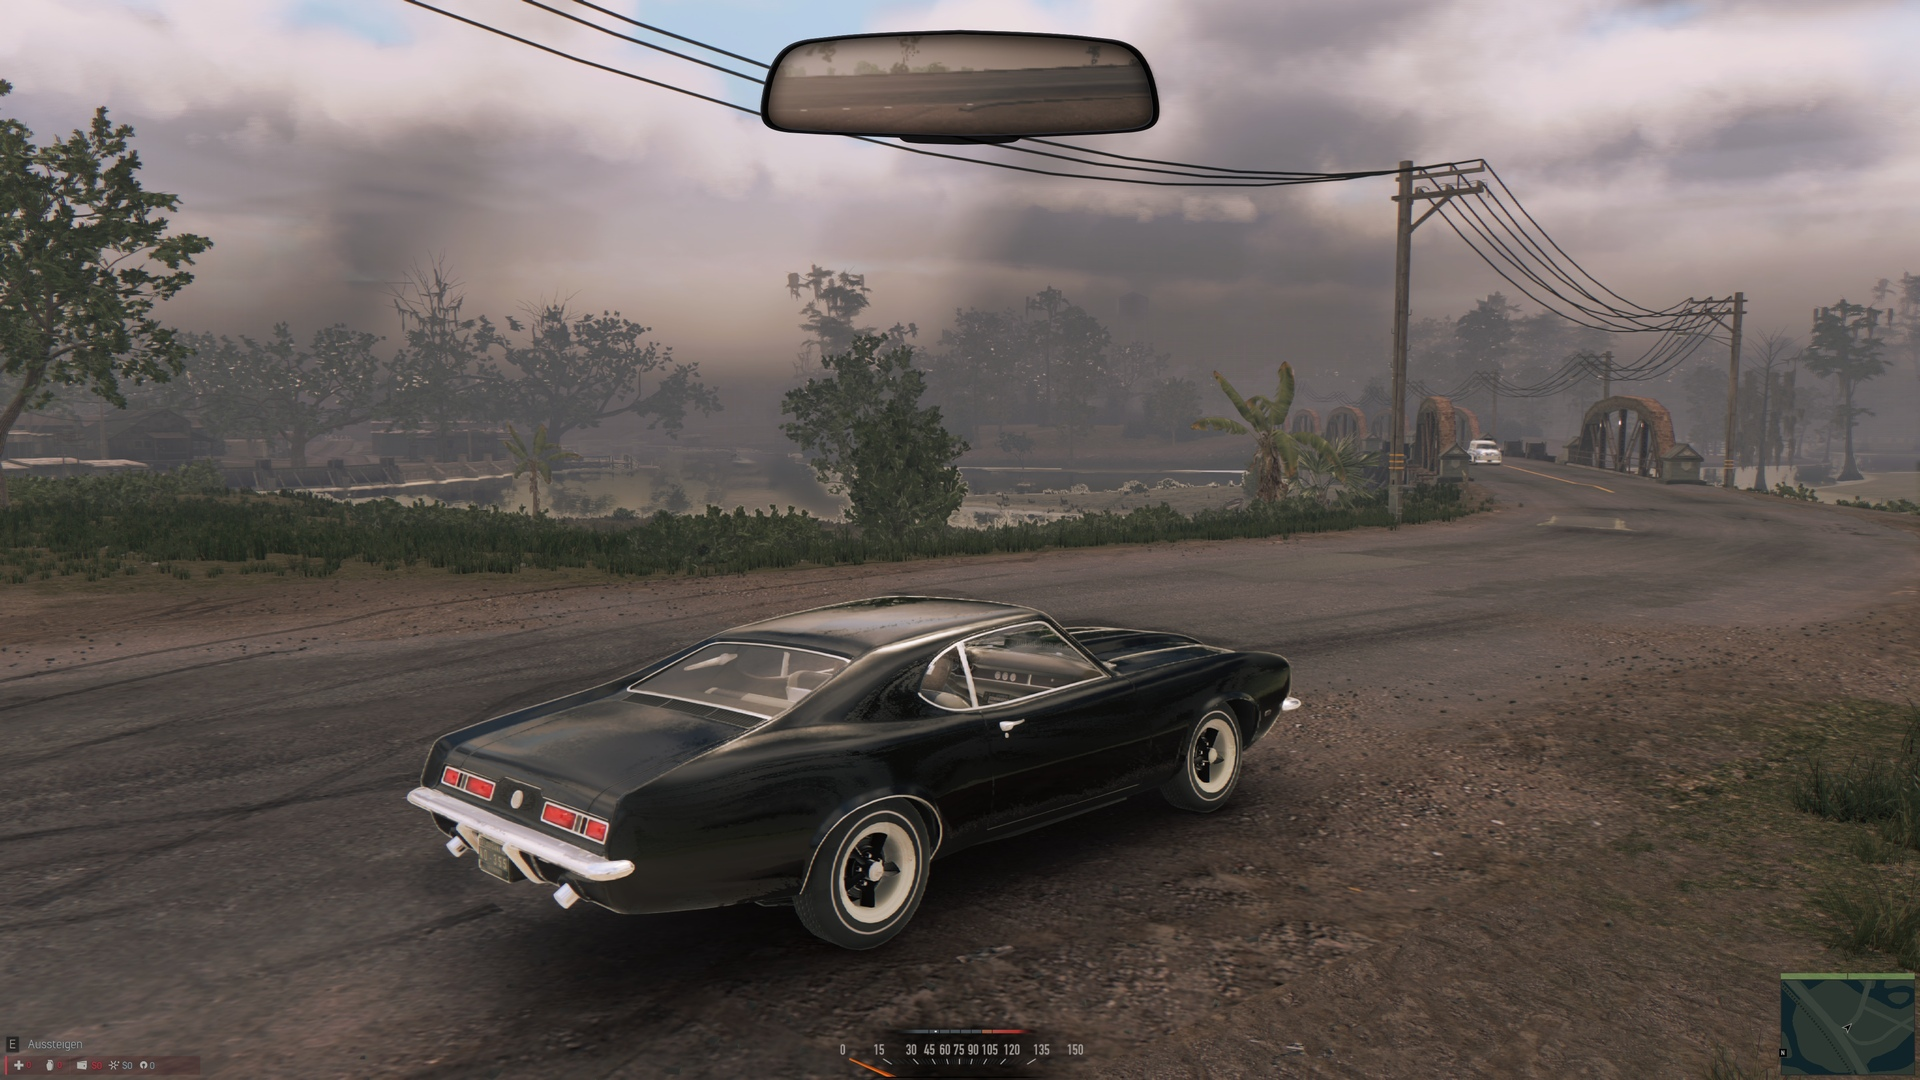 Mafia-3-Temp-Artifacts-2160p-pcgh